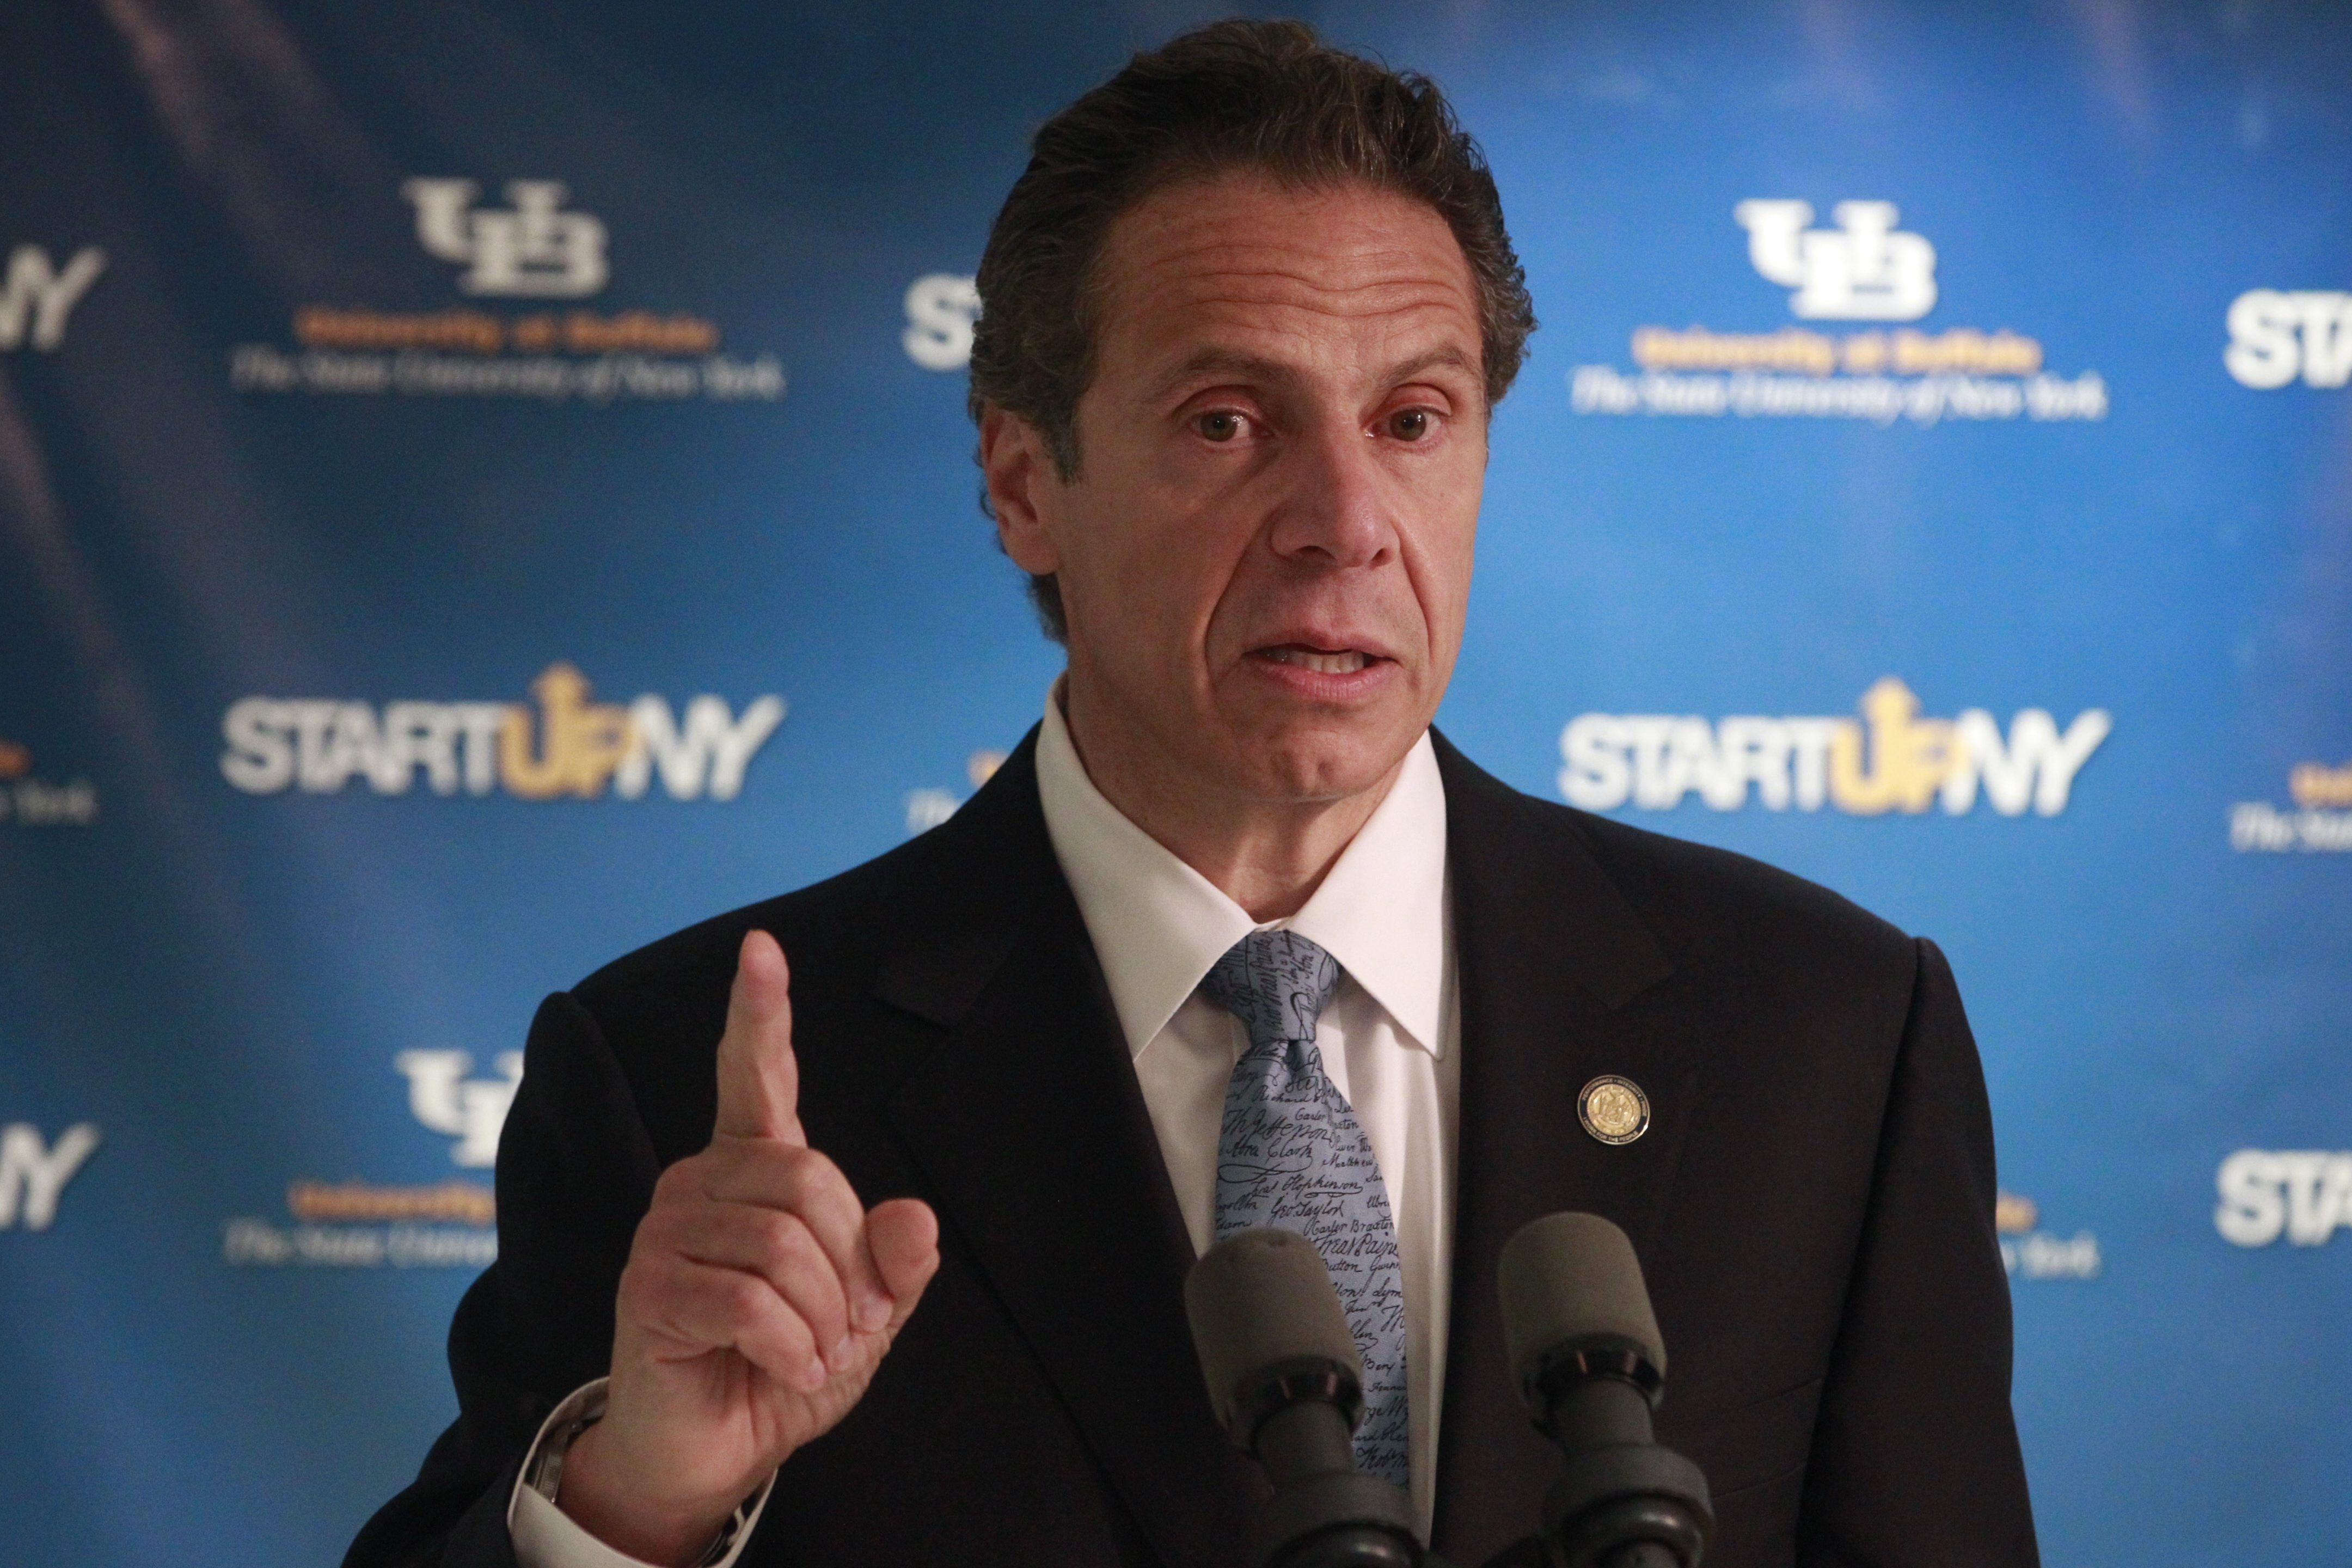 Gov. Andrew M. Cuomo made a stop at the University at Buffalo late last month. (Monday, July 28, 2014 John Hickey/Buffalo News)